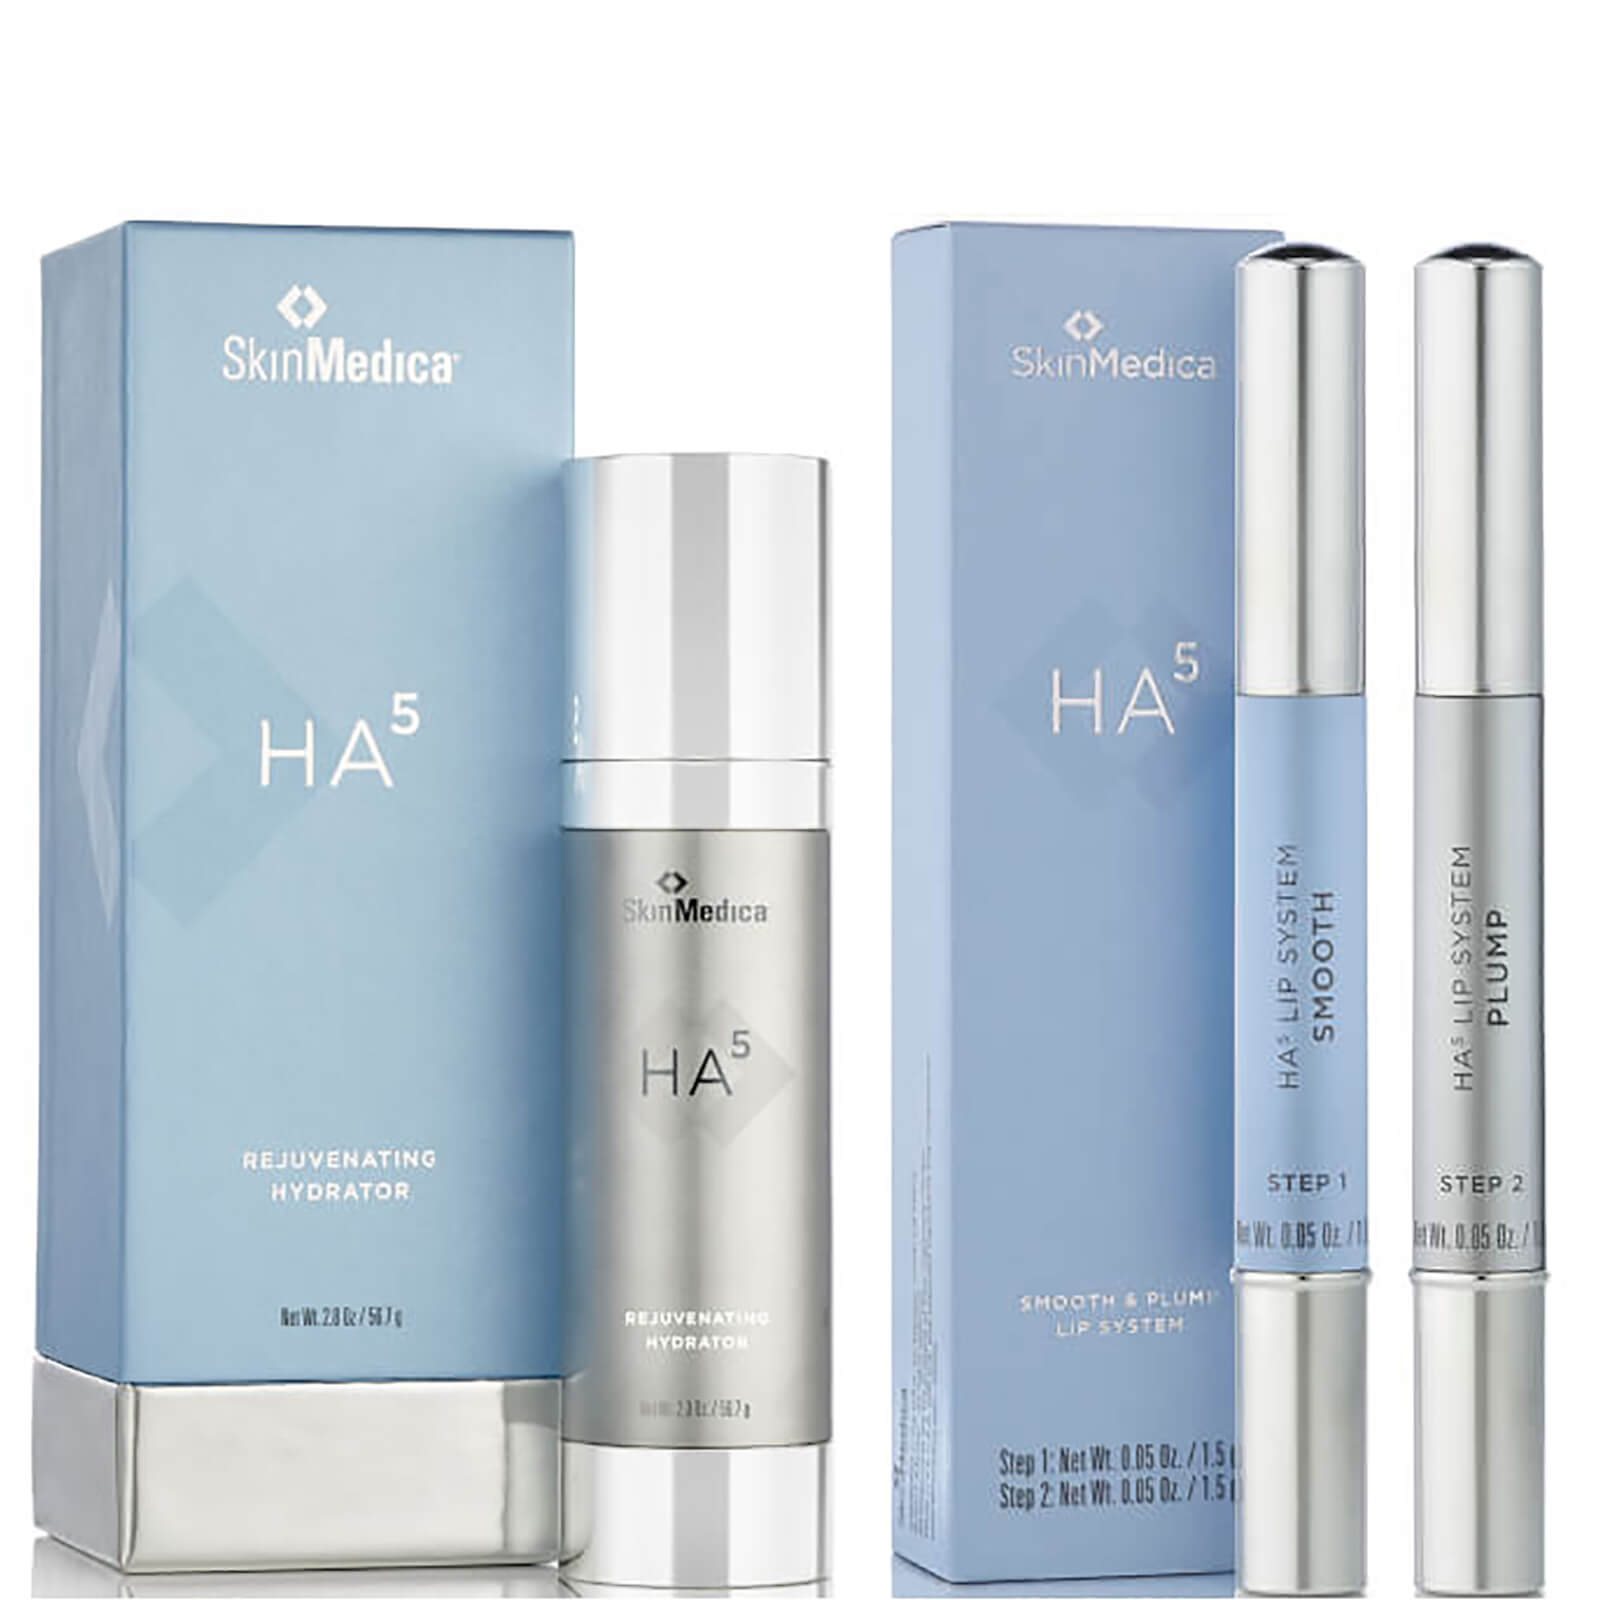 SkinMedica HA5 Rejuvenating Hydrator and HA5 Smooth and Plump Lip System (Worth $246)